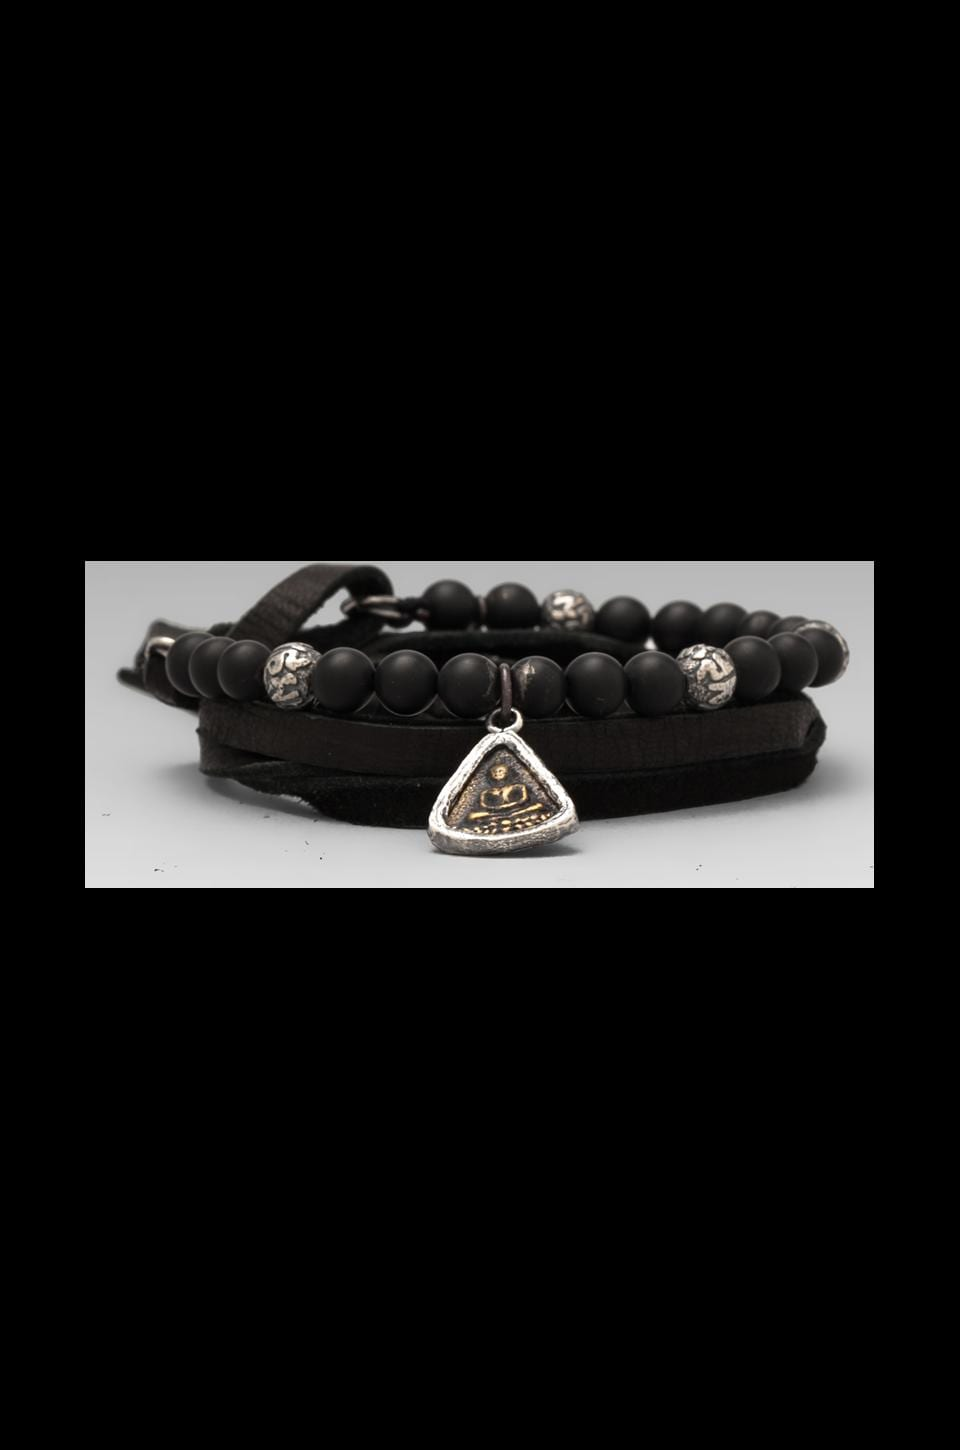 M.Cohen Three Wrap Leather and Stones Bracelet in Onyx Buddha